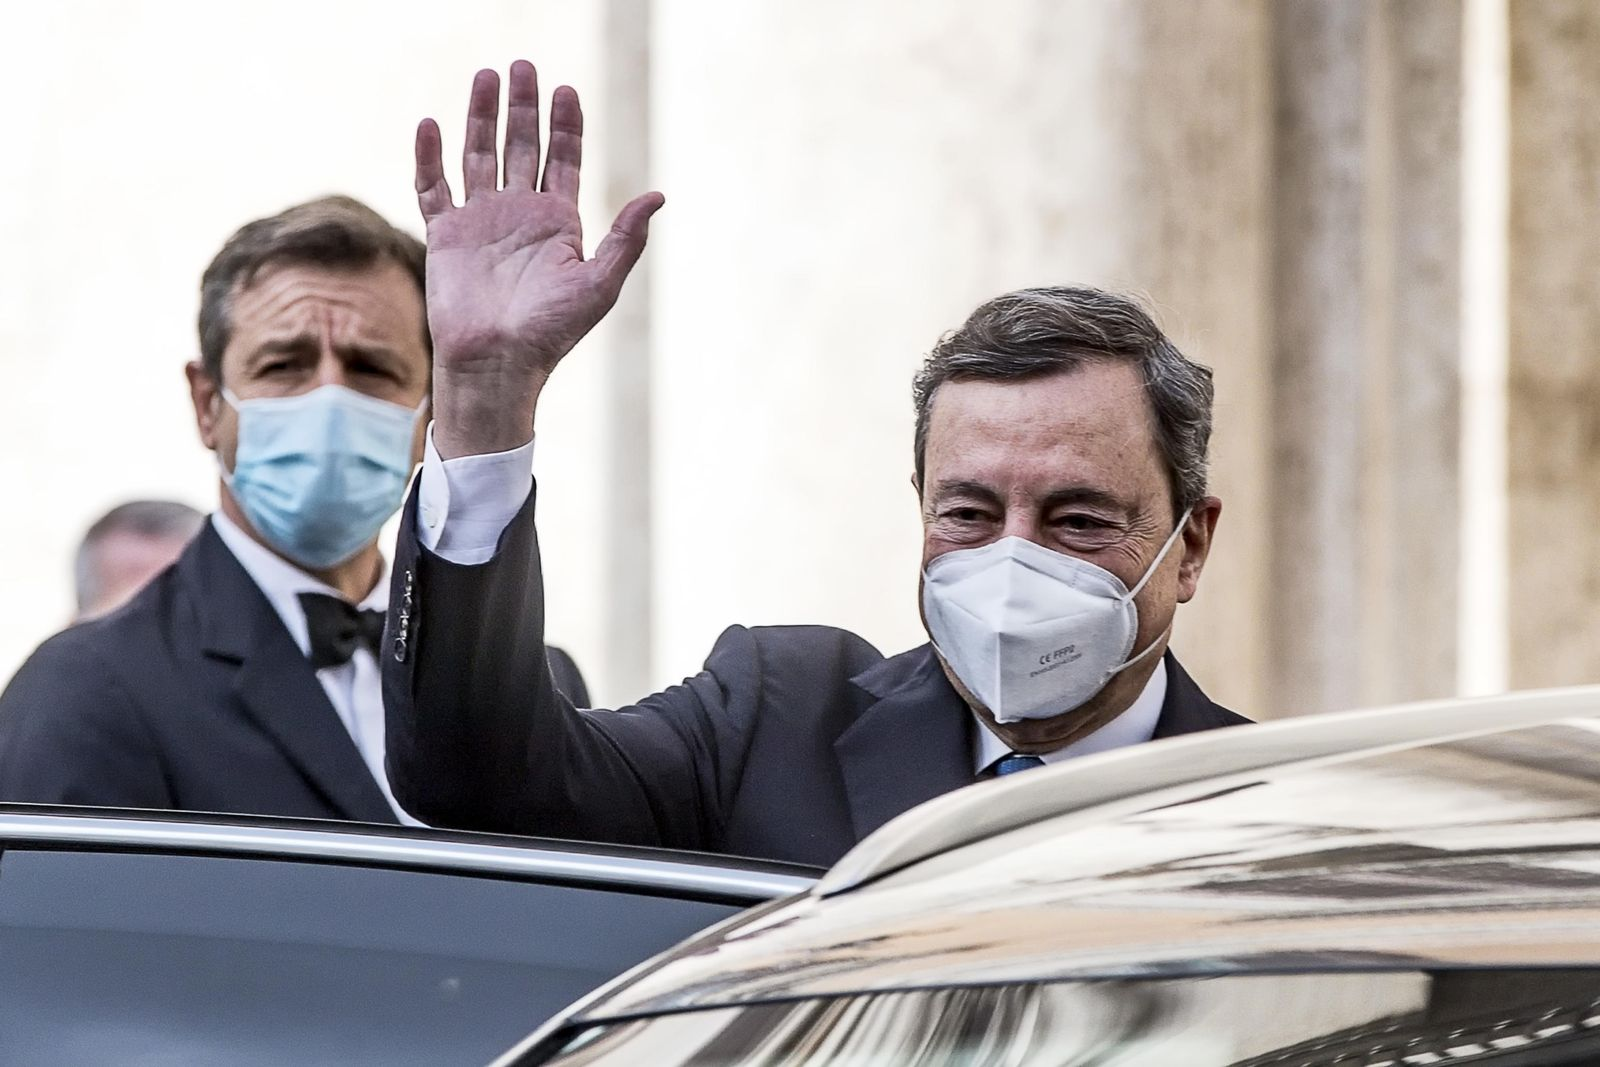 Italy's Mario Draghi accepts mandate to form national unity government, Rome - 03 Feb 2021